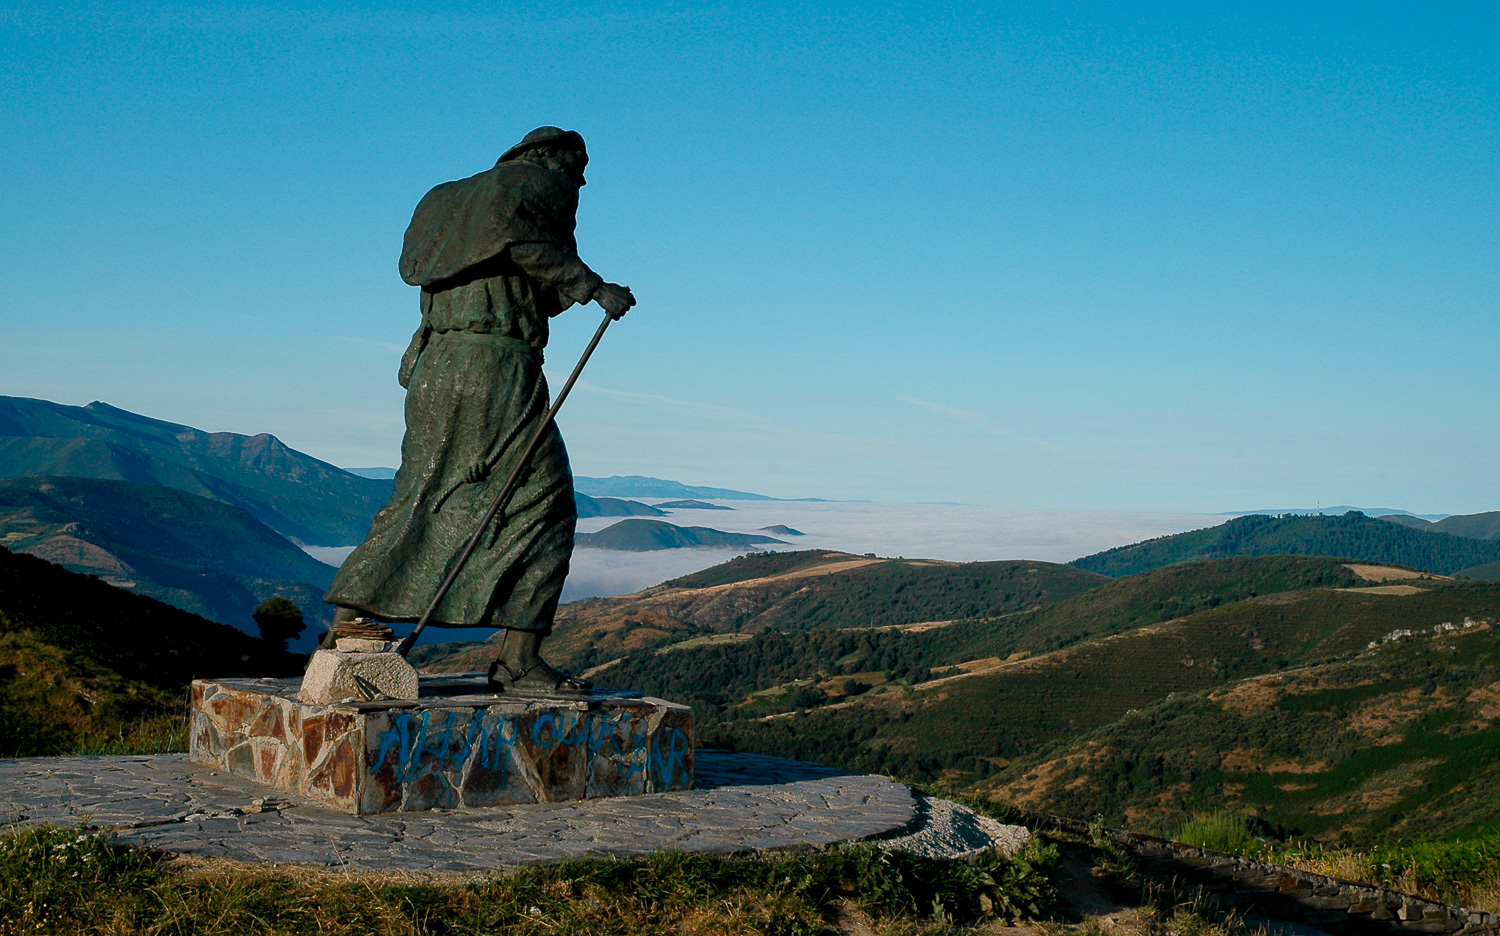 """Saint James on the Camino de Santiago"", Spain, 2005"